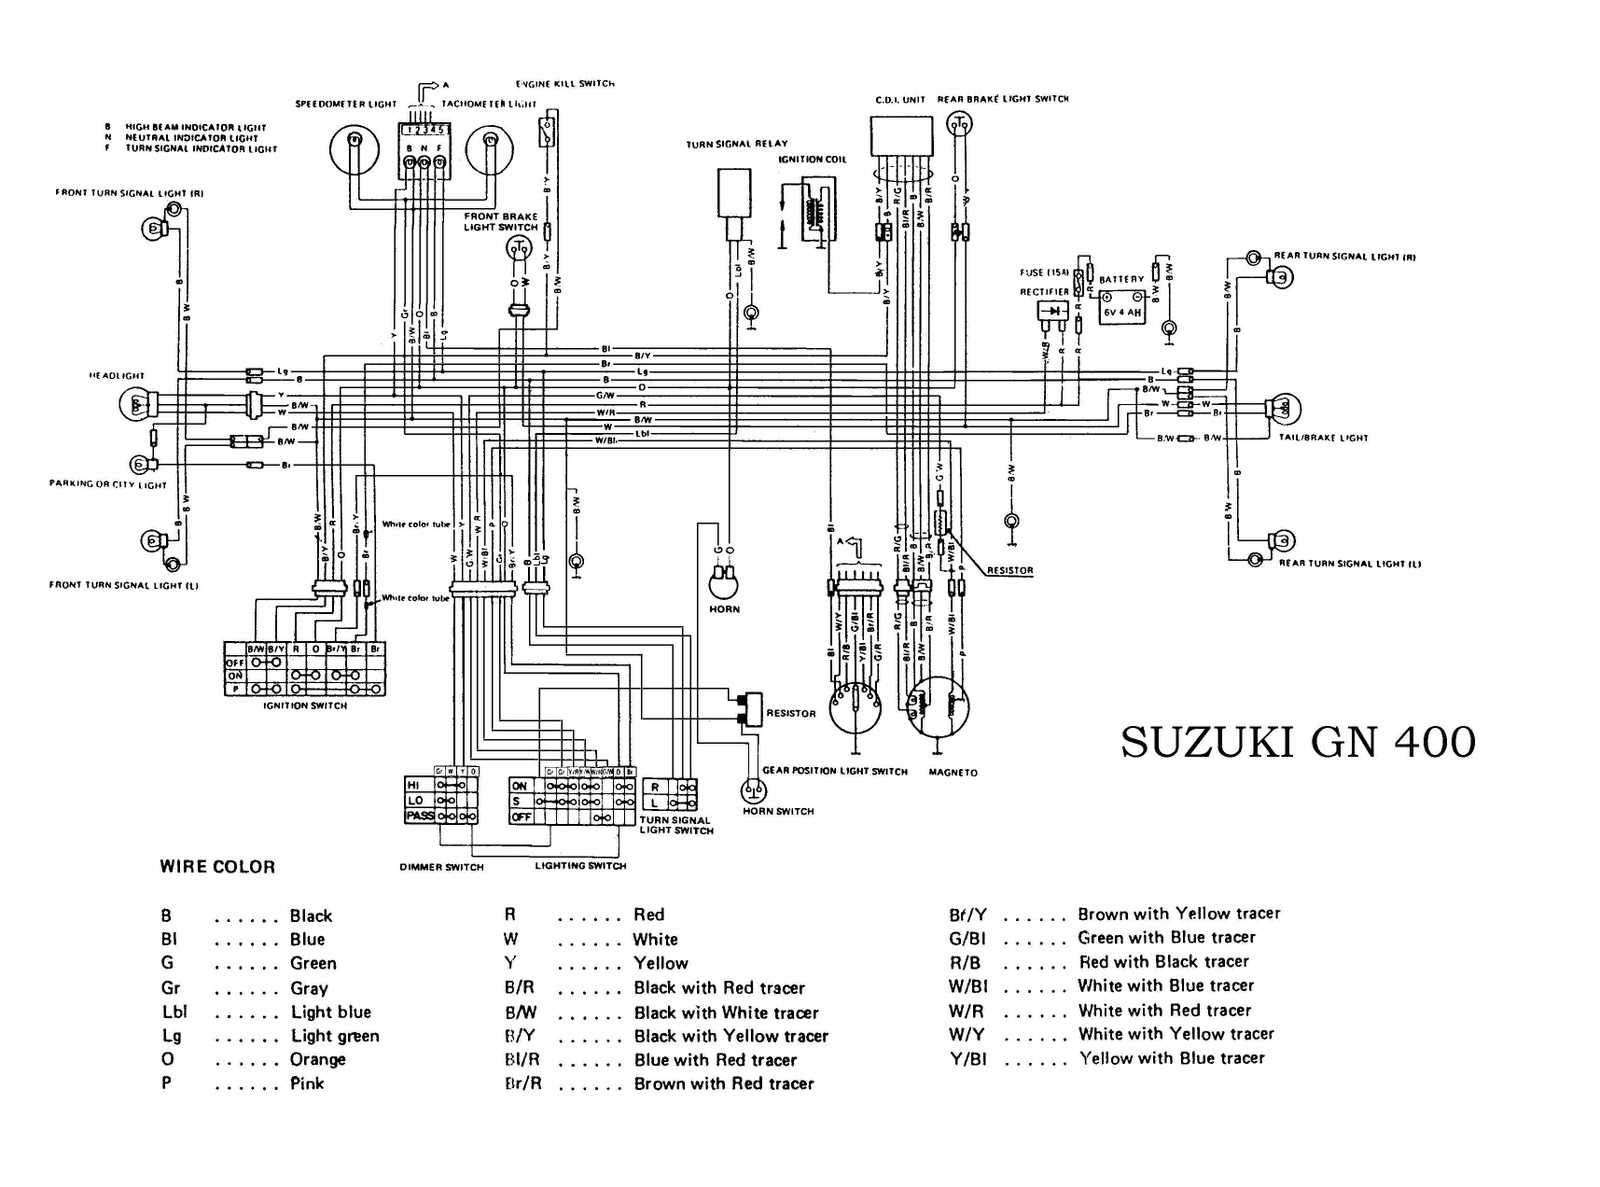 ... Suzuki+GN400+Electrical+Wiring+Diagram e67 wiring diagram smart car  diagrams \